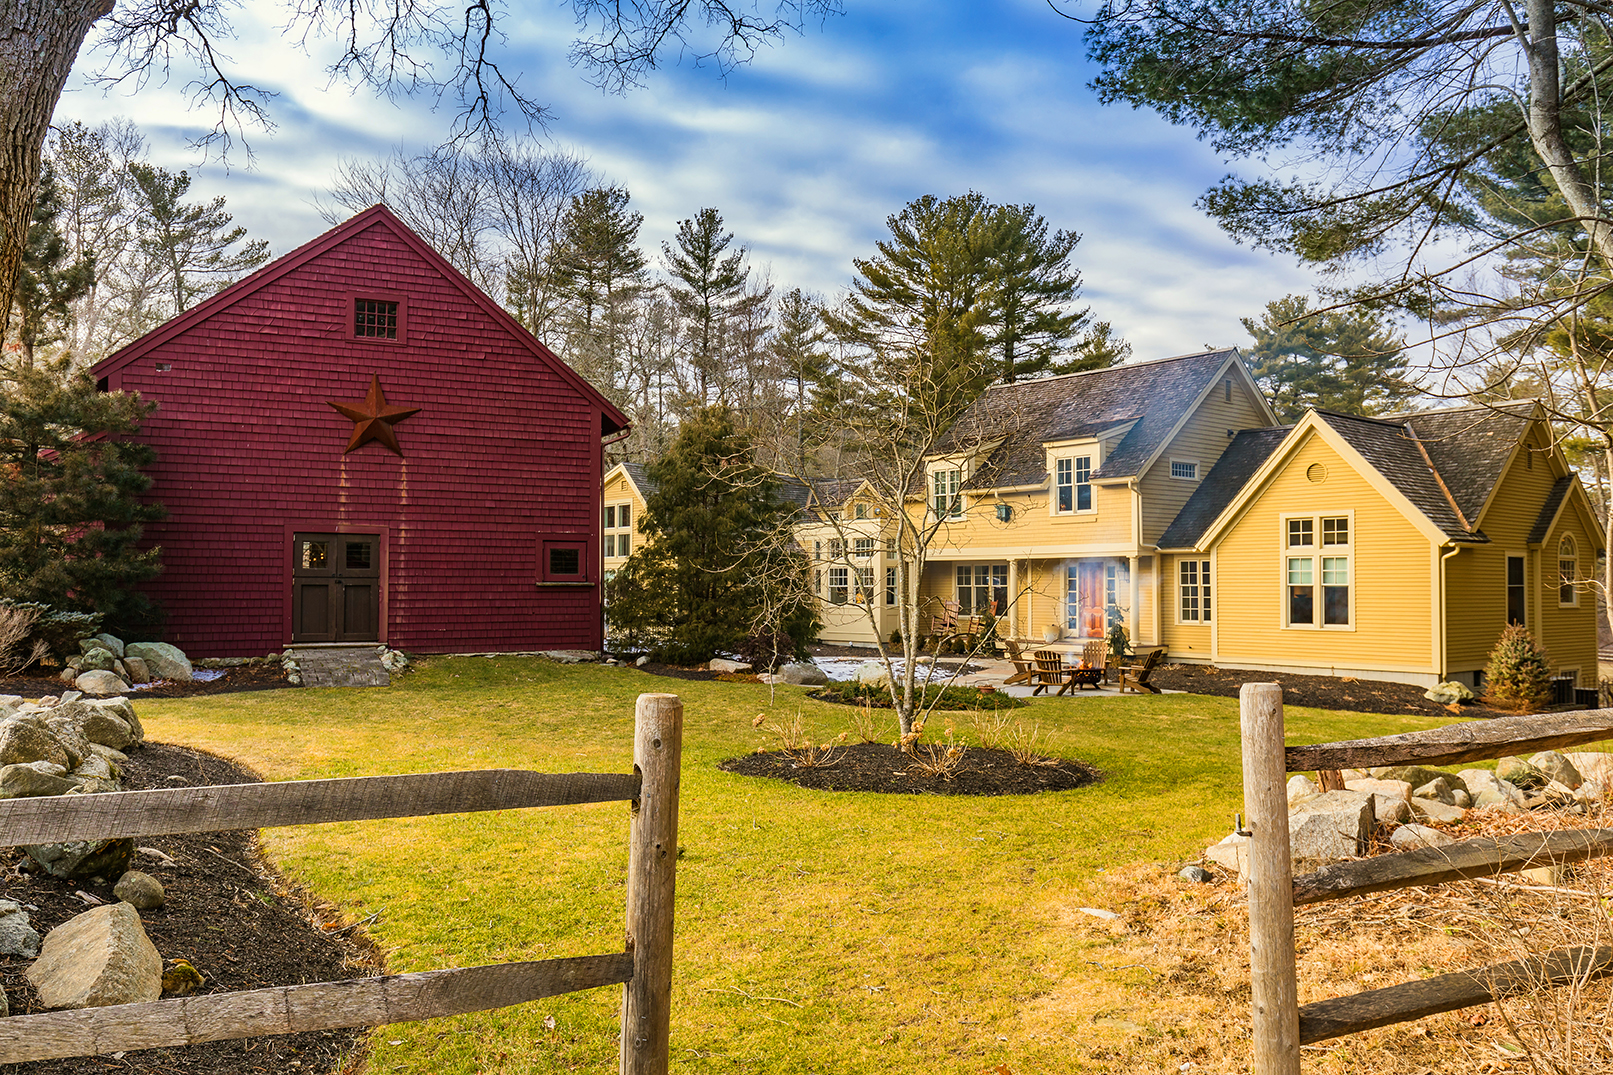 167 North Street - Click to VIew